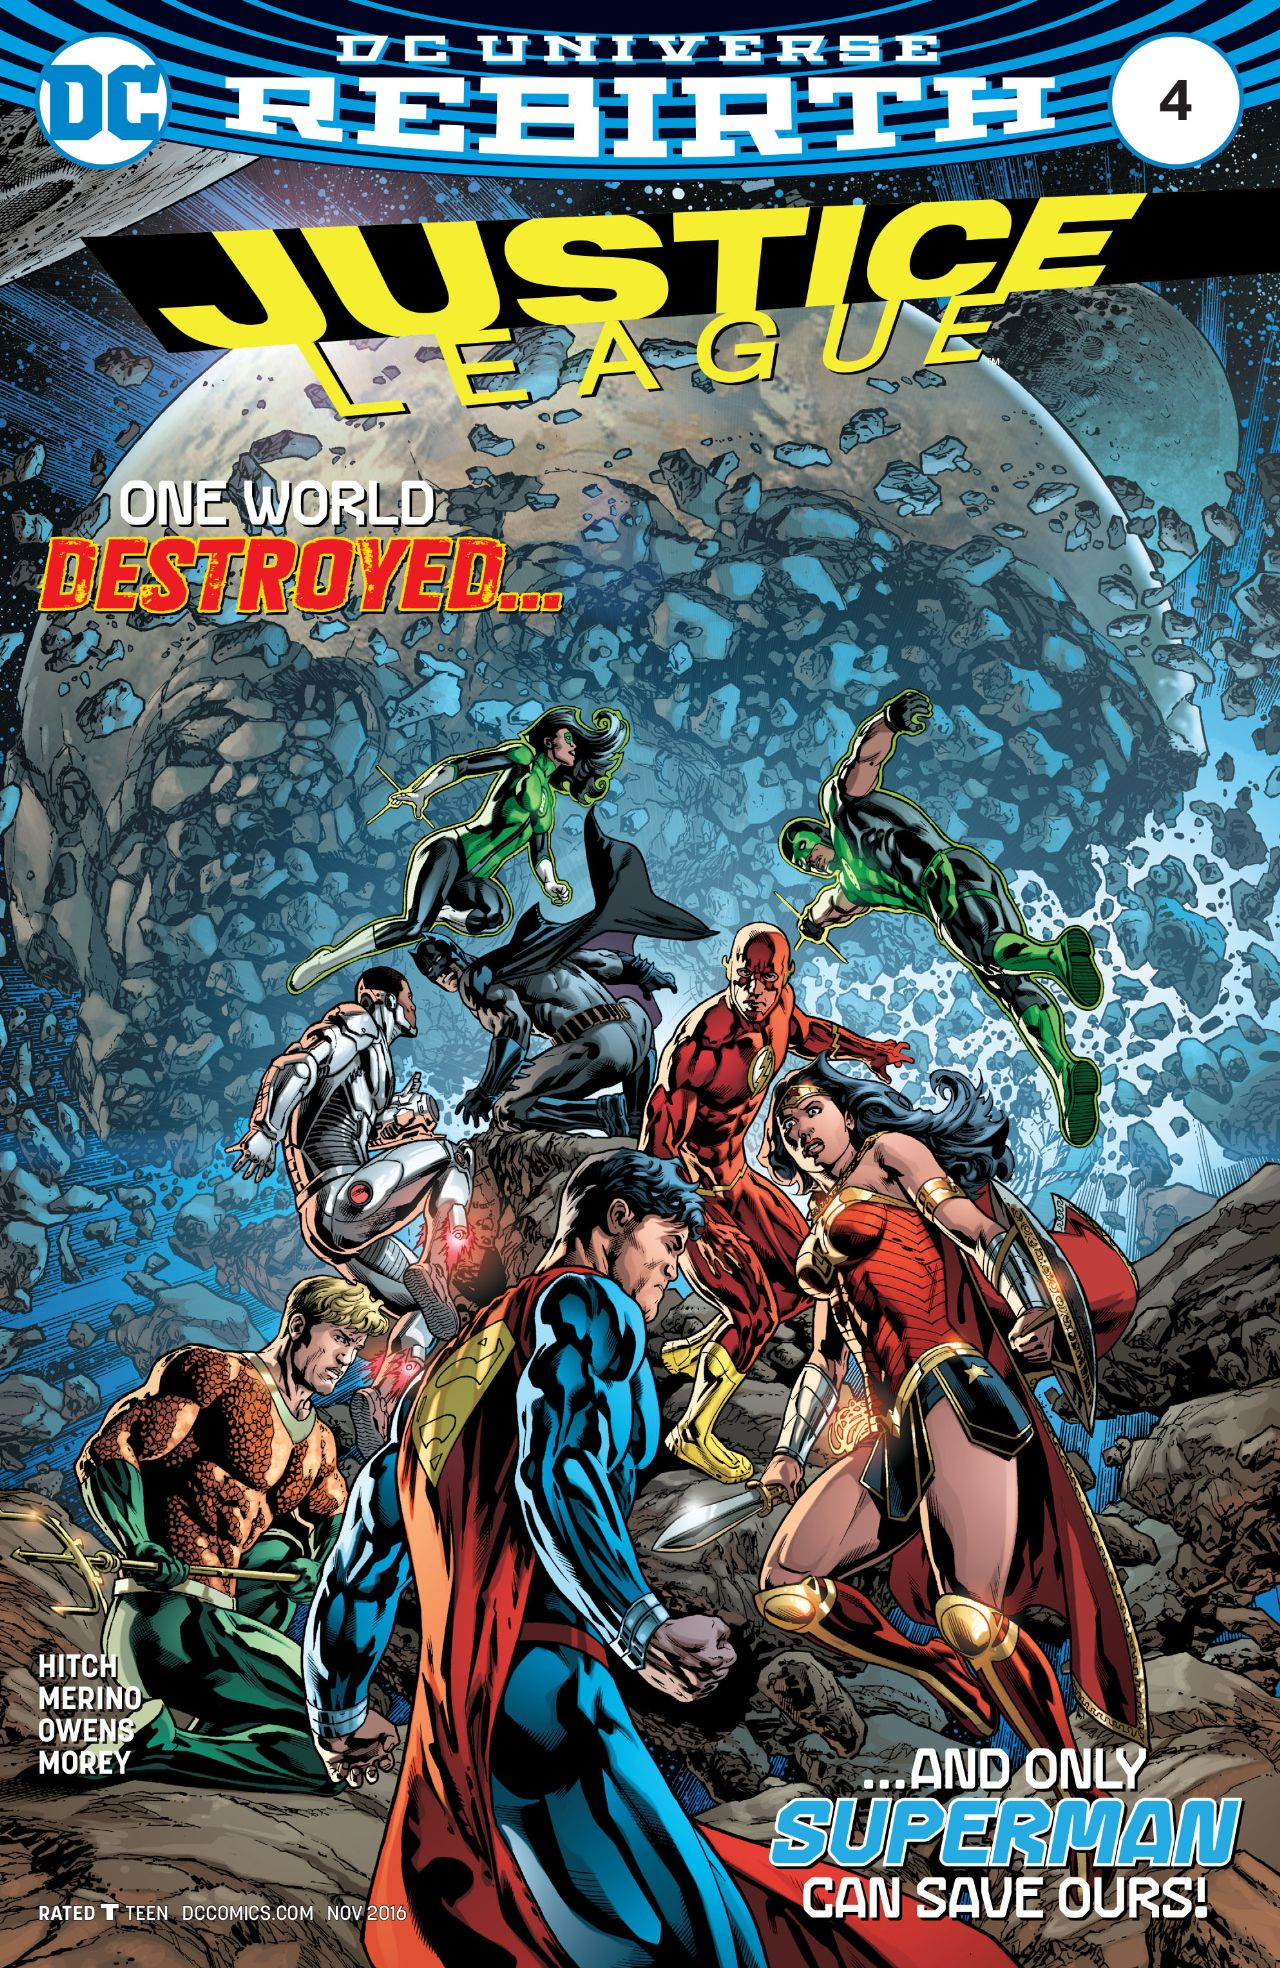 Justice League Vol 3 4   DC Database   FANDOM powered by Wikia